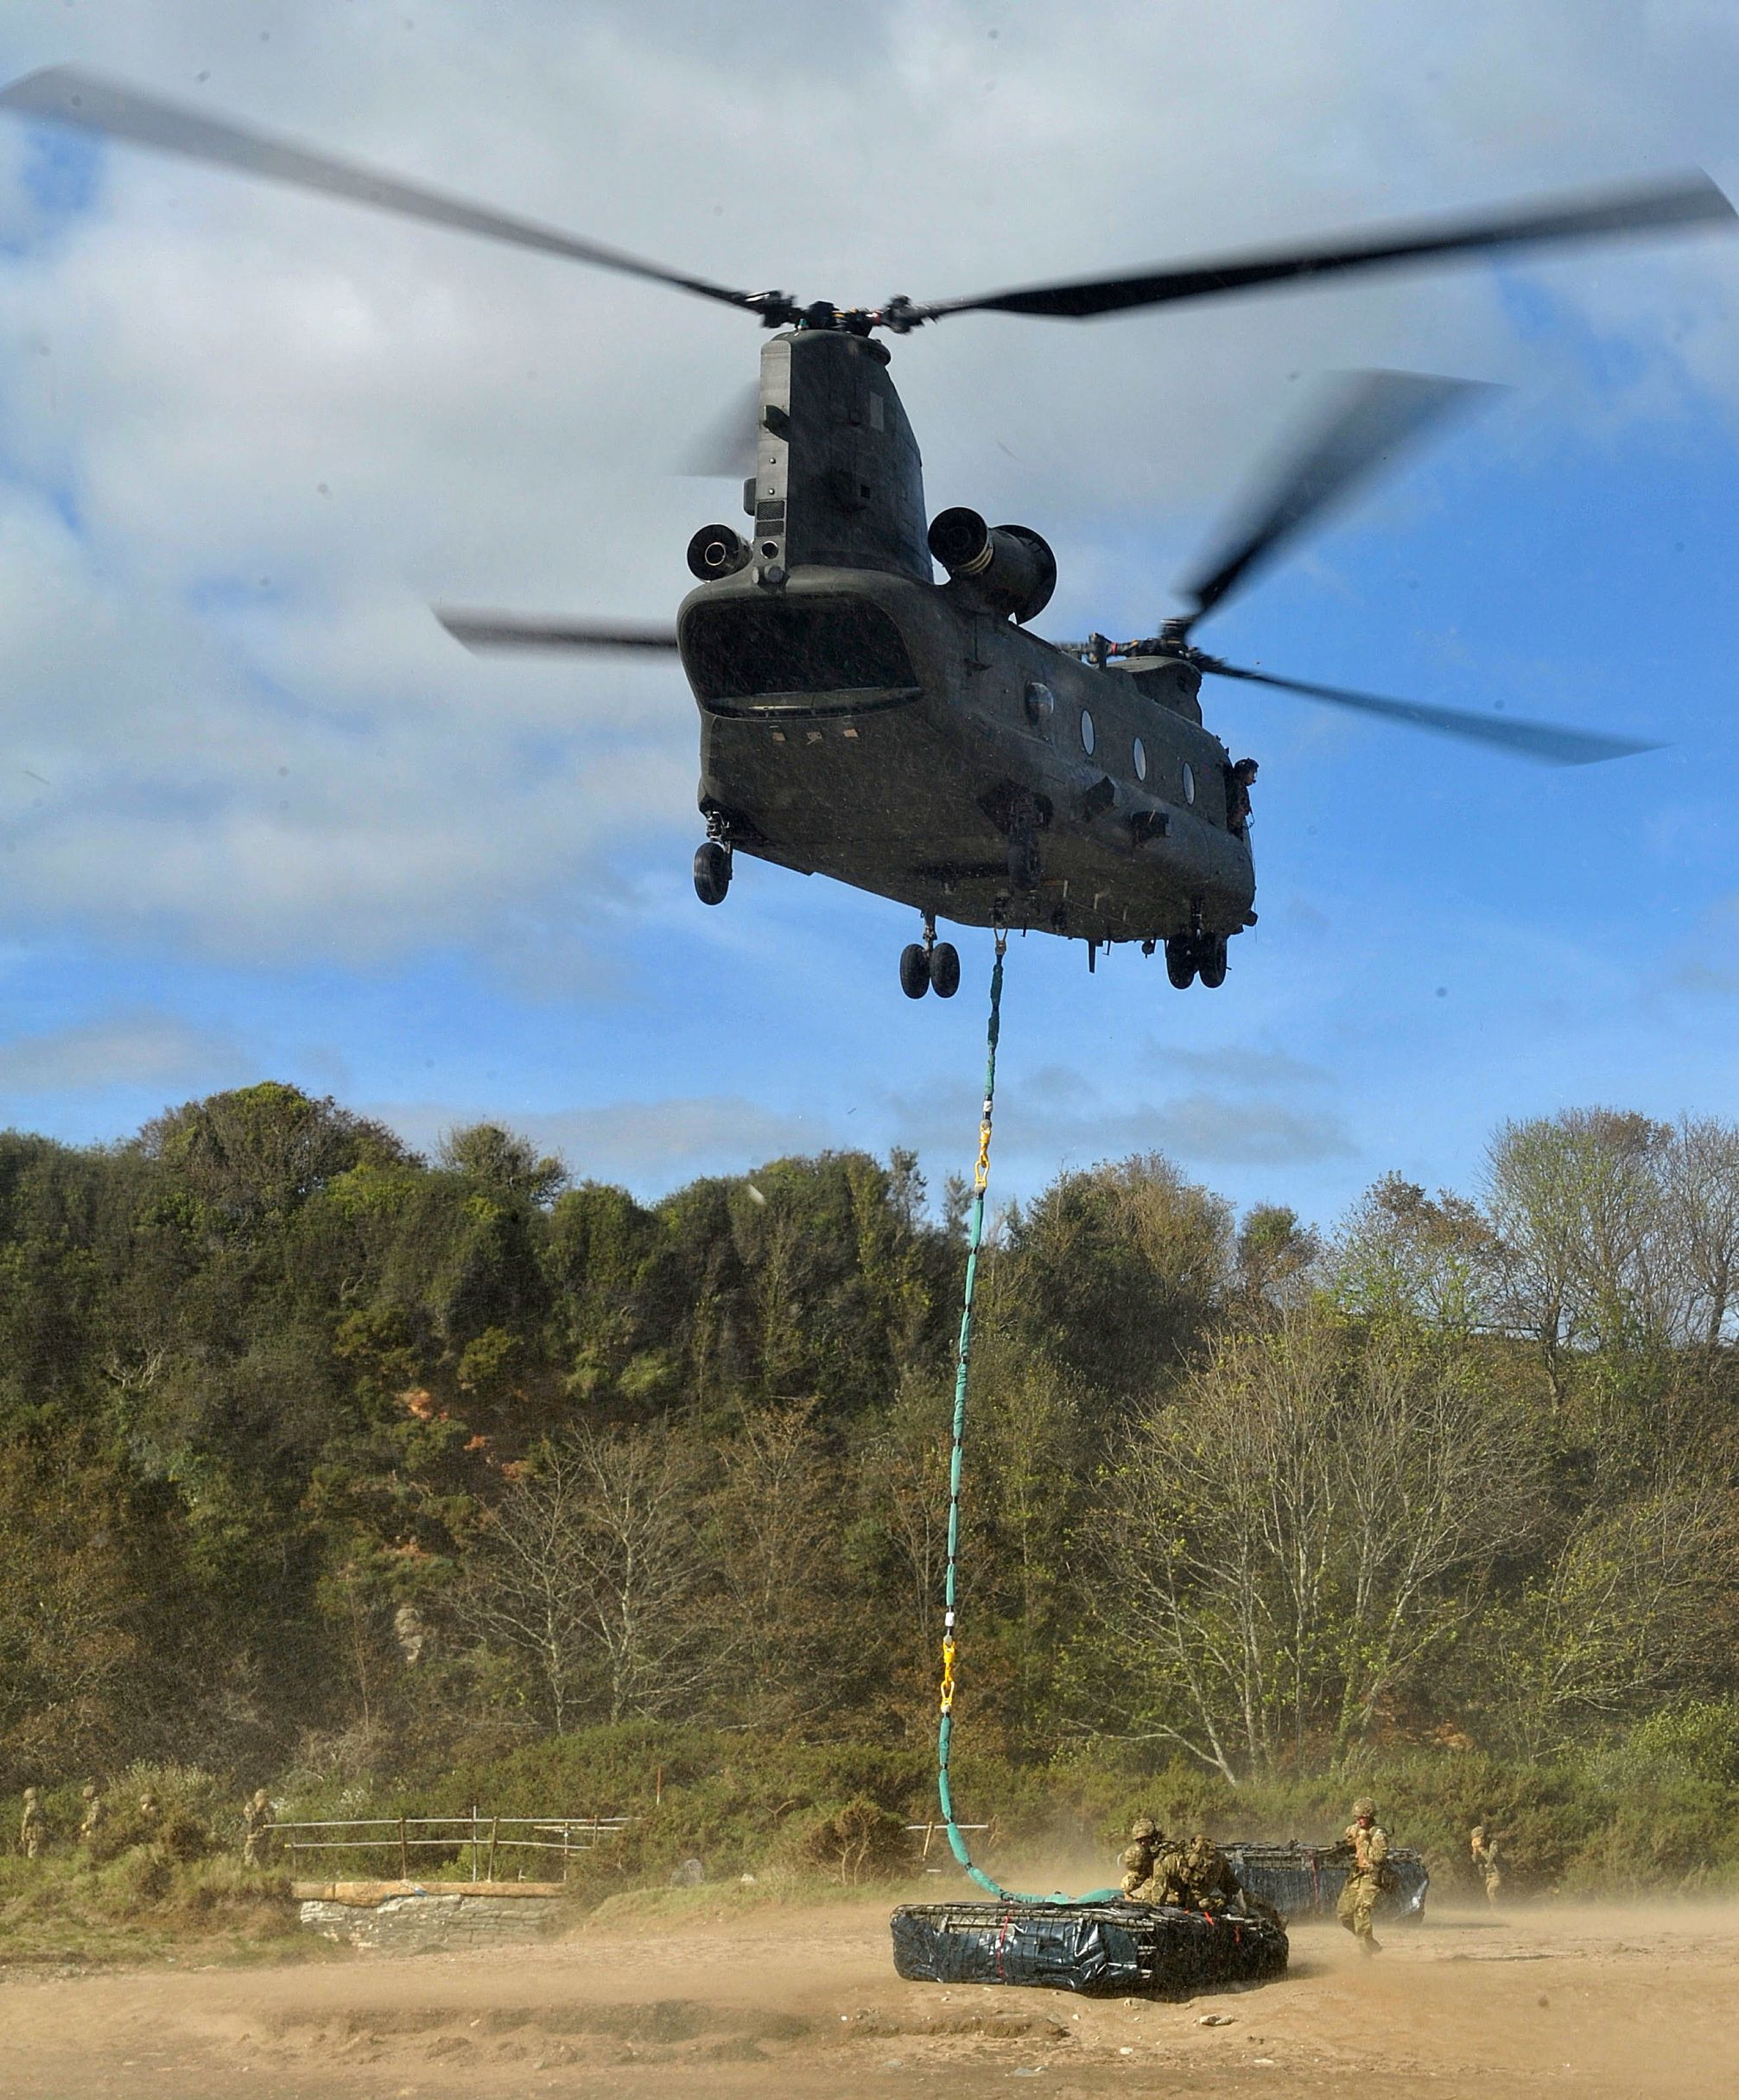 As part of a wader package, 3 Commando Brigade along with 4 Assault Squadron Royal Marines (4 ASRM), 29 and 24 Commando today conducted exercises using landing craft, hover craft and a Royal Air Force Chinook helicopter currently based on HMS Illustrious. The training happened at Carlyon Bay near St. Austell, Cornwall with civilian onlookers.